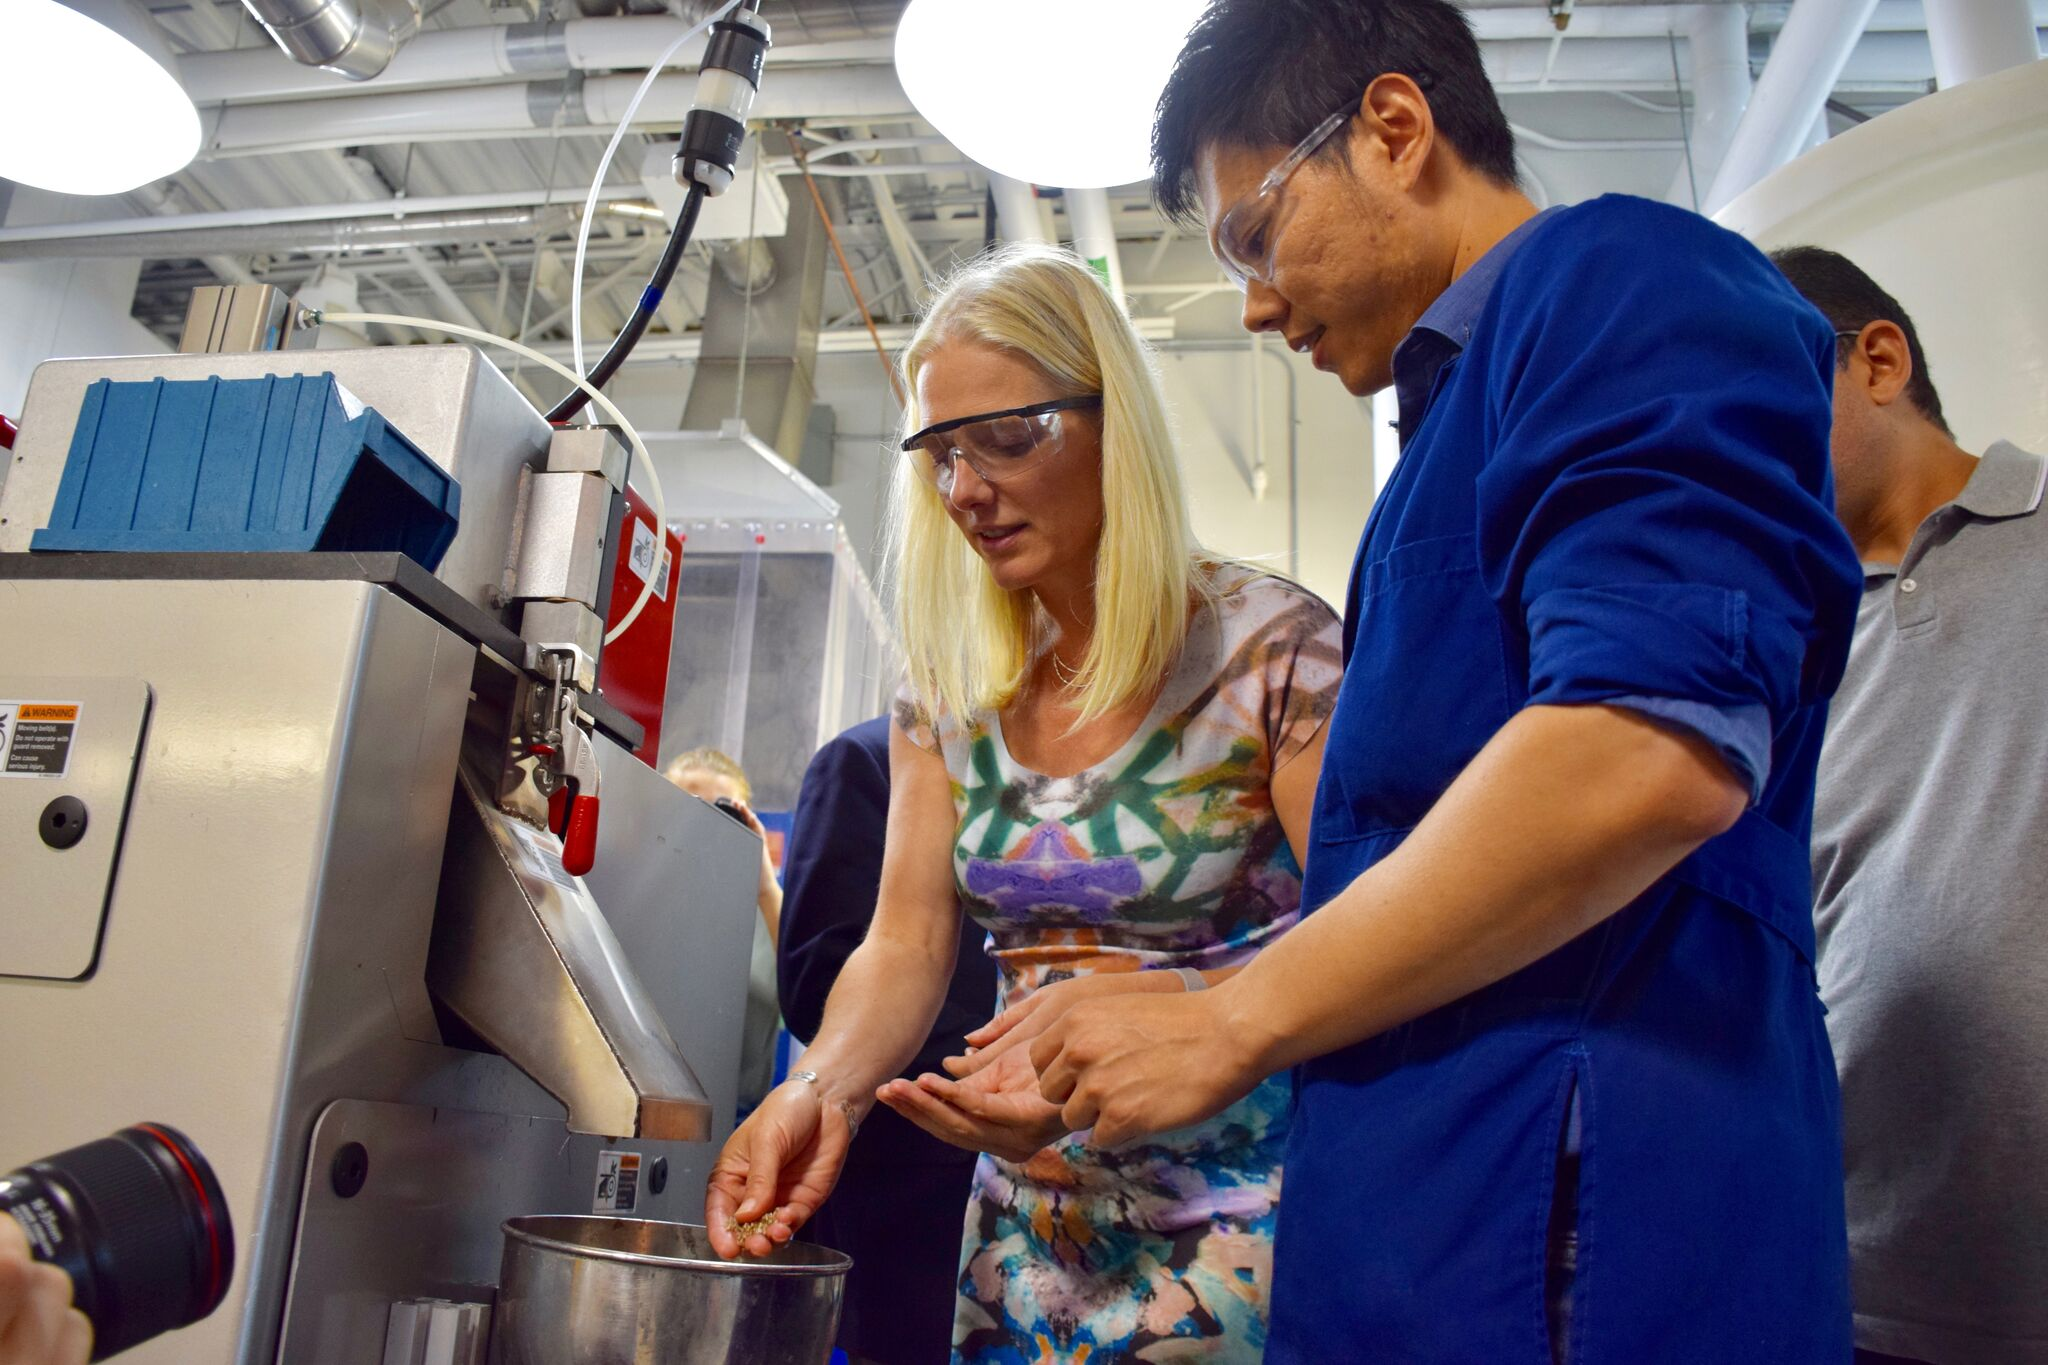 The Honourable Catherine McKenna touring the Bioproducts facility (Processing lab)